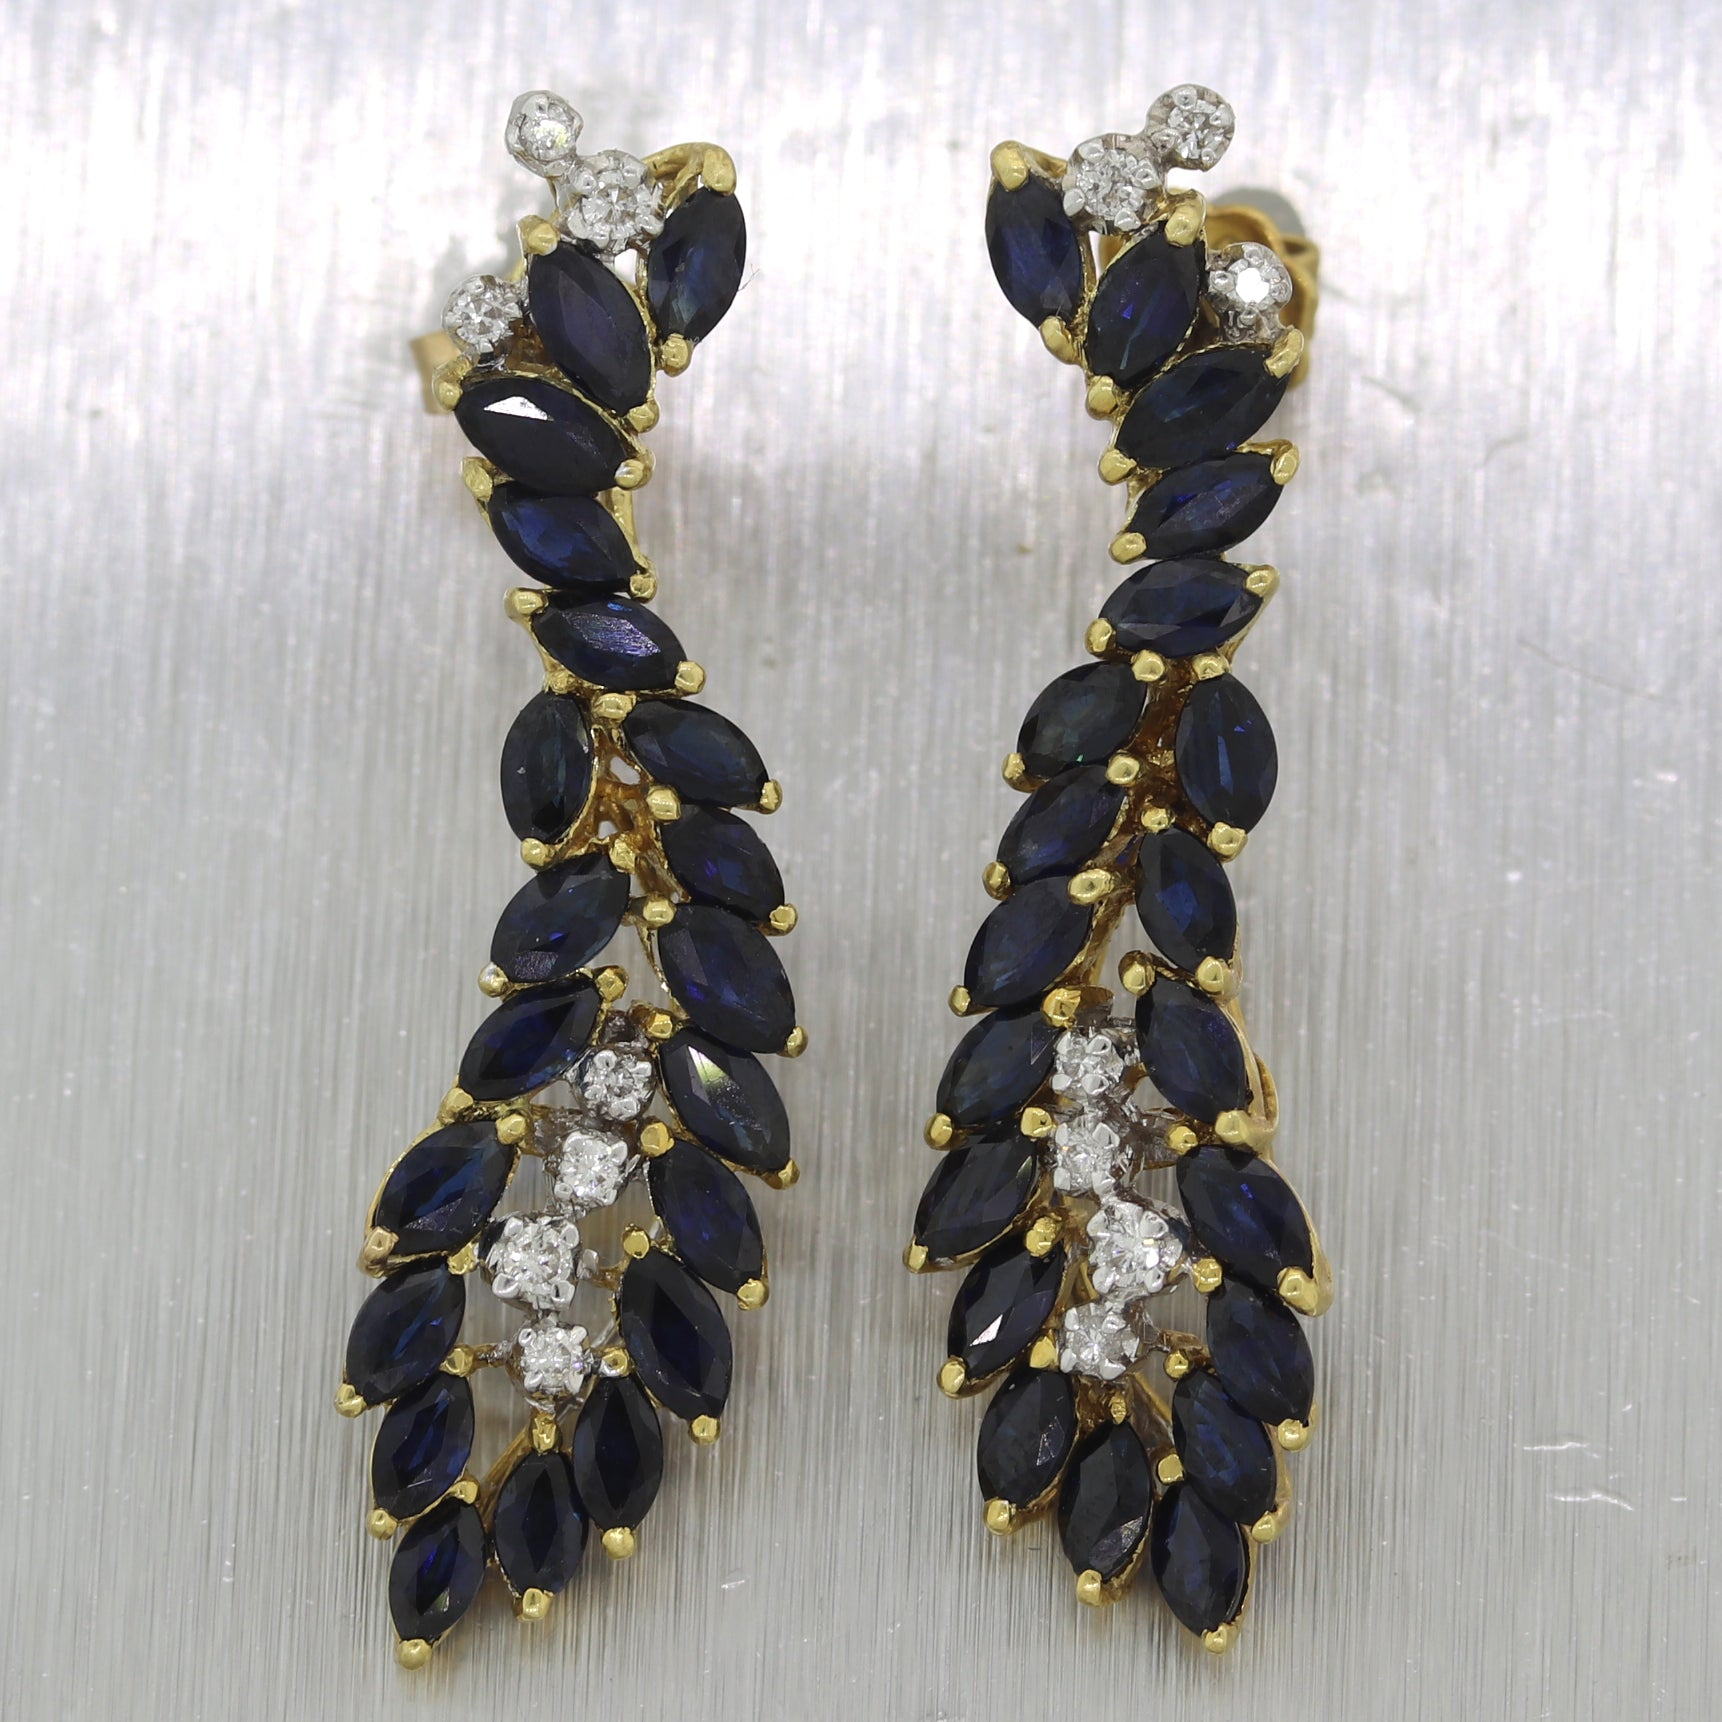 Vintage Estate 18k Yellow Gold 3.40ctw Sapphire & Diamond Drop Earrings